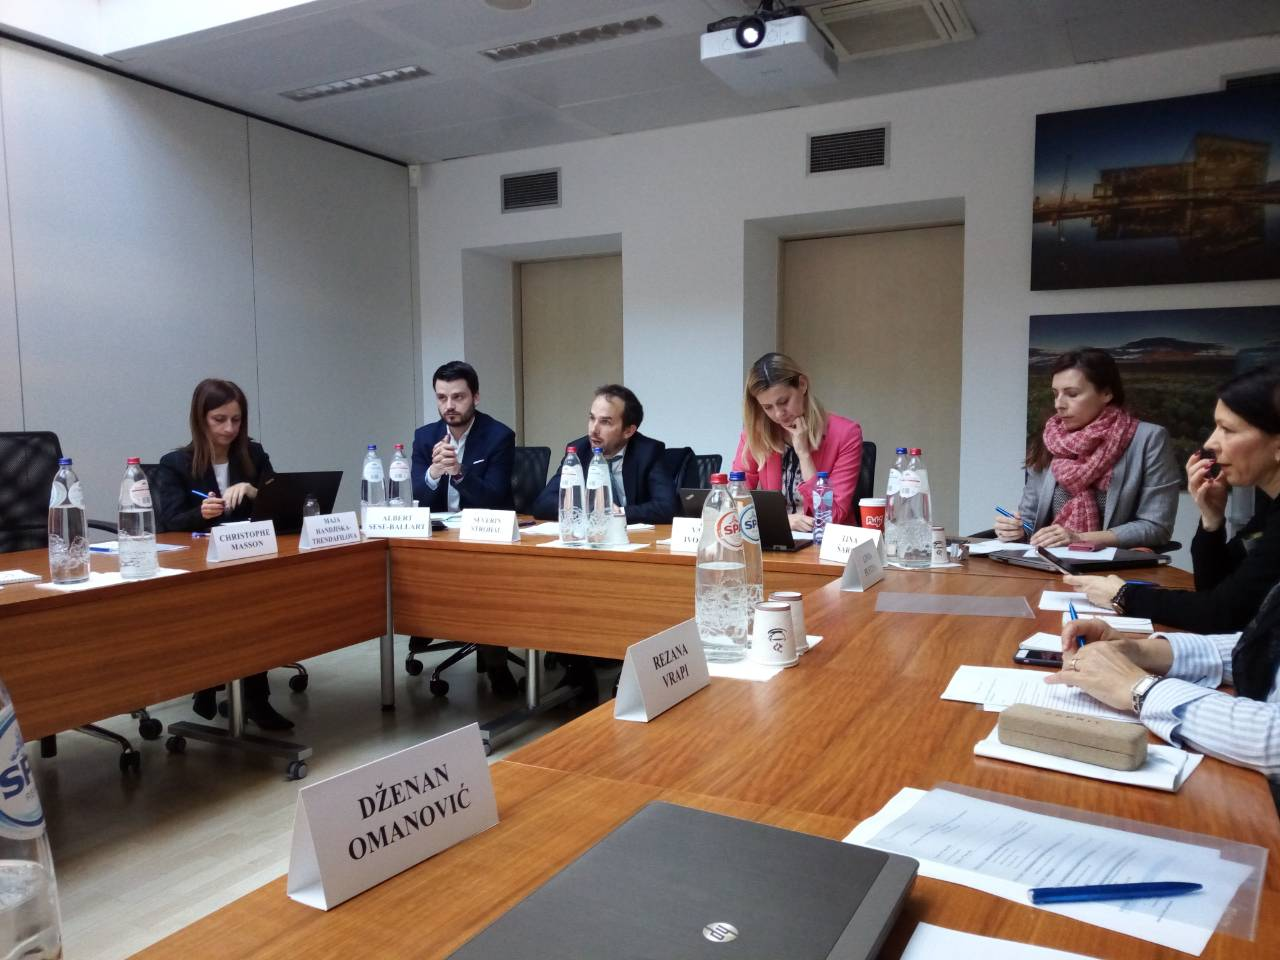 Sixth Meeting Of The Joint RCC – ERI SEE Working Group On Recognition Of Academic Qualifications, 13th May 2019, Brussels